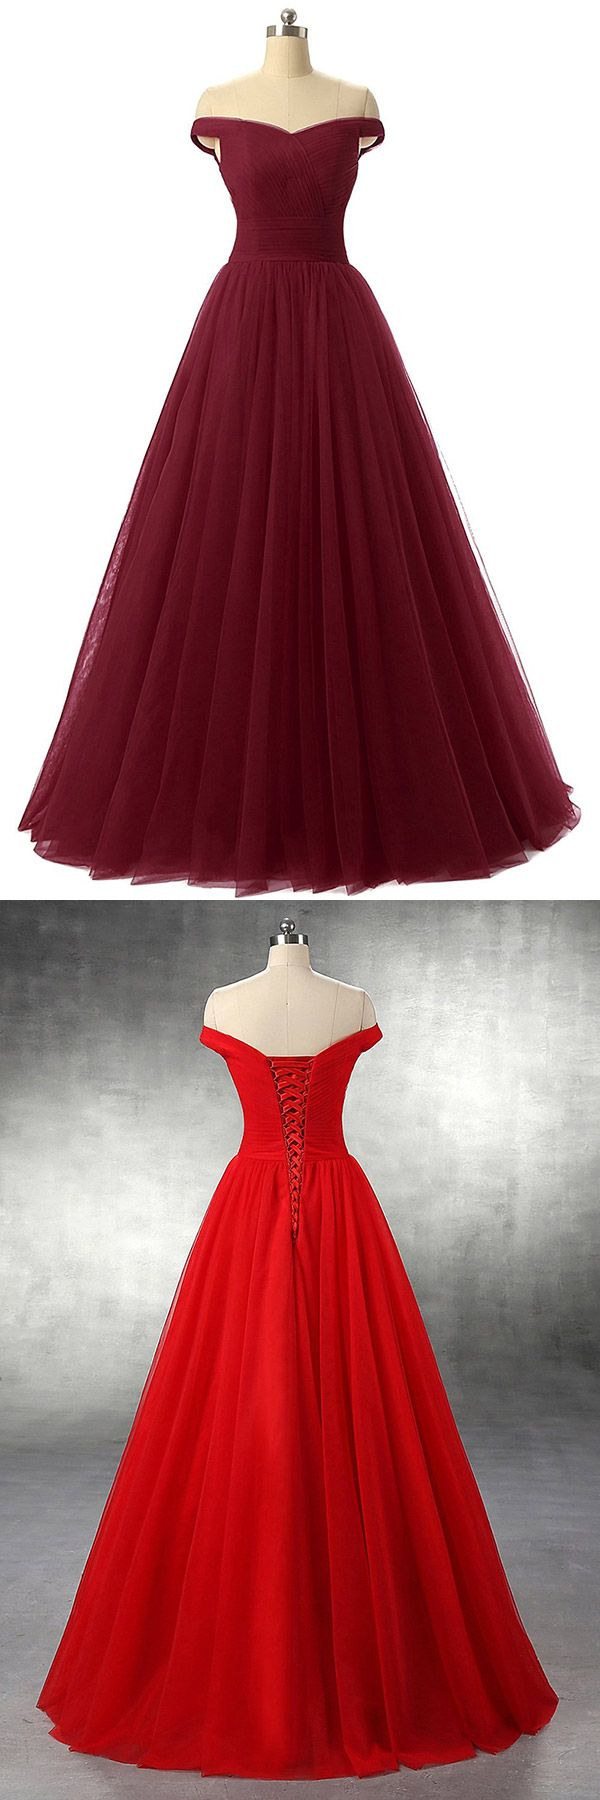 Burgundy Prom Dresses Long, 2018 Prom Ball Gowns, Ruffles Off-the-shoulder Formal Evening Dresses Princess